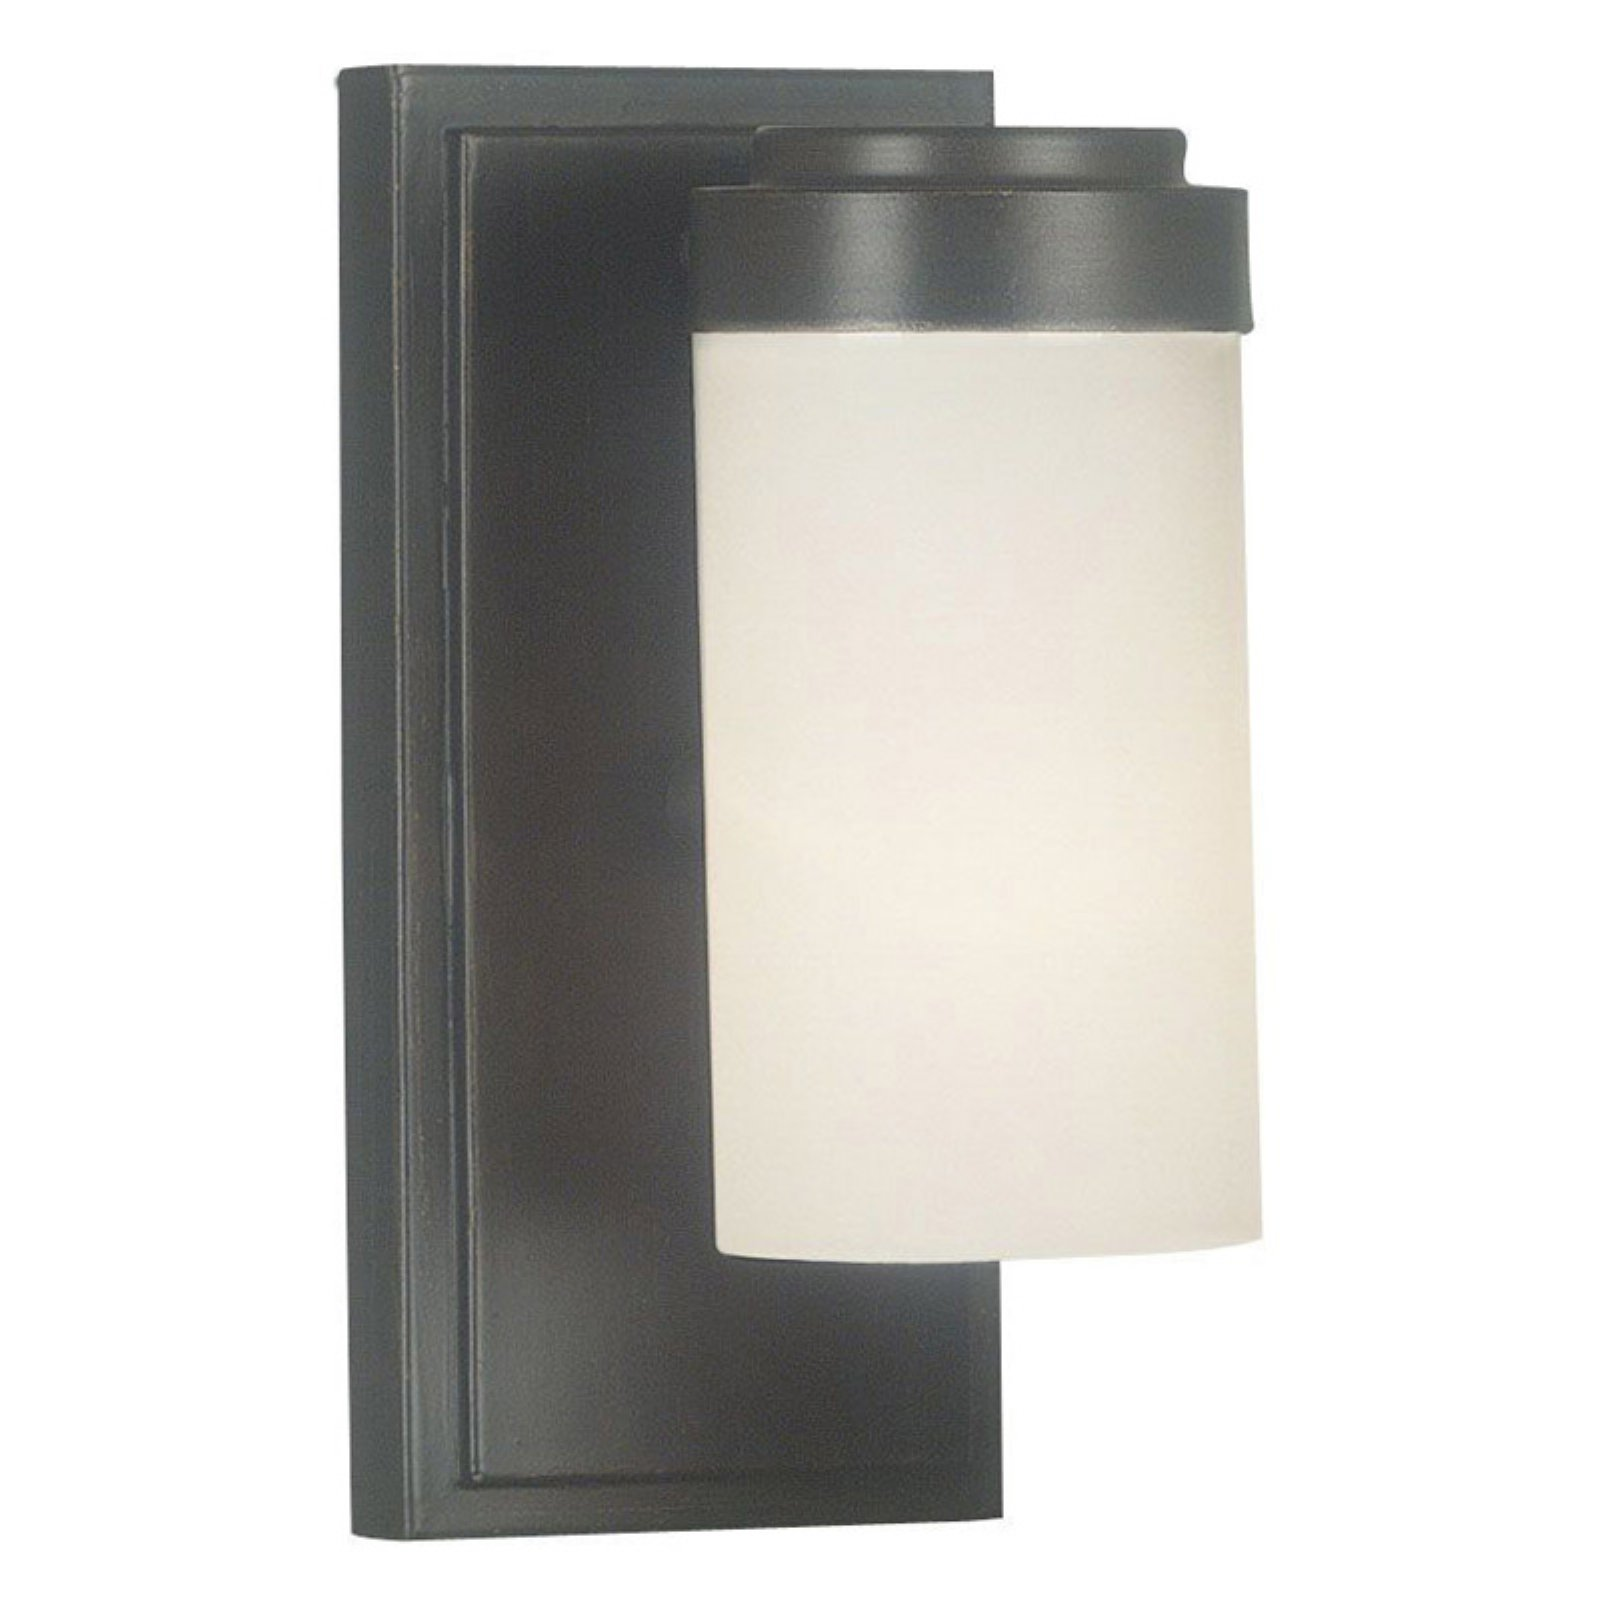 Kenroy Home 91761SBZ Toronto 1-Light Sconce - 5W in. Satin Bronze